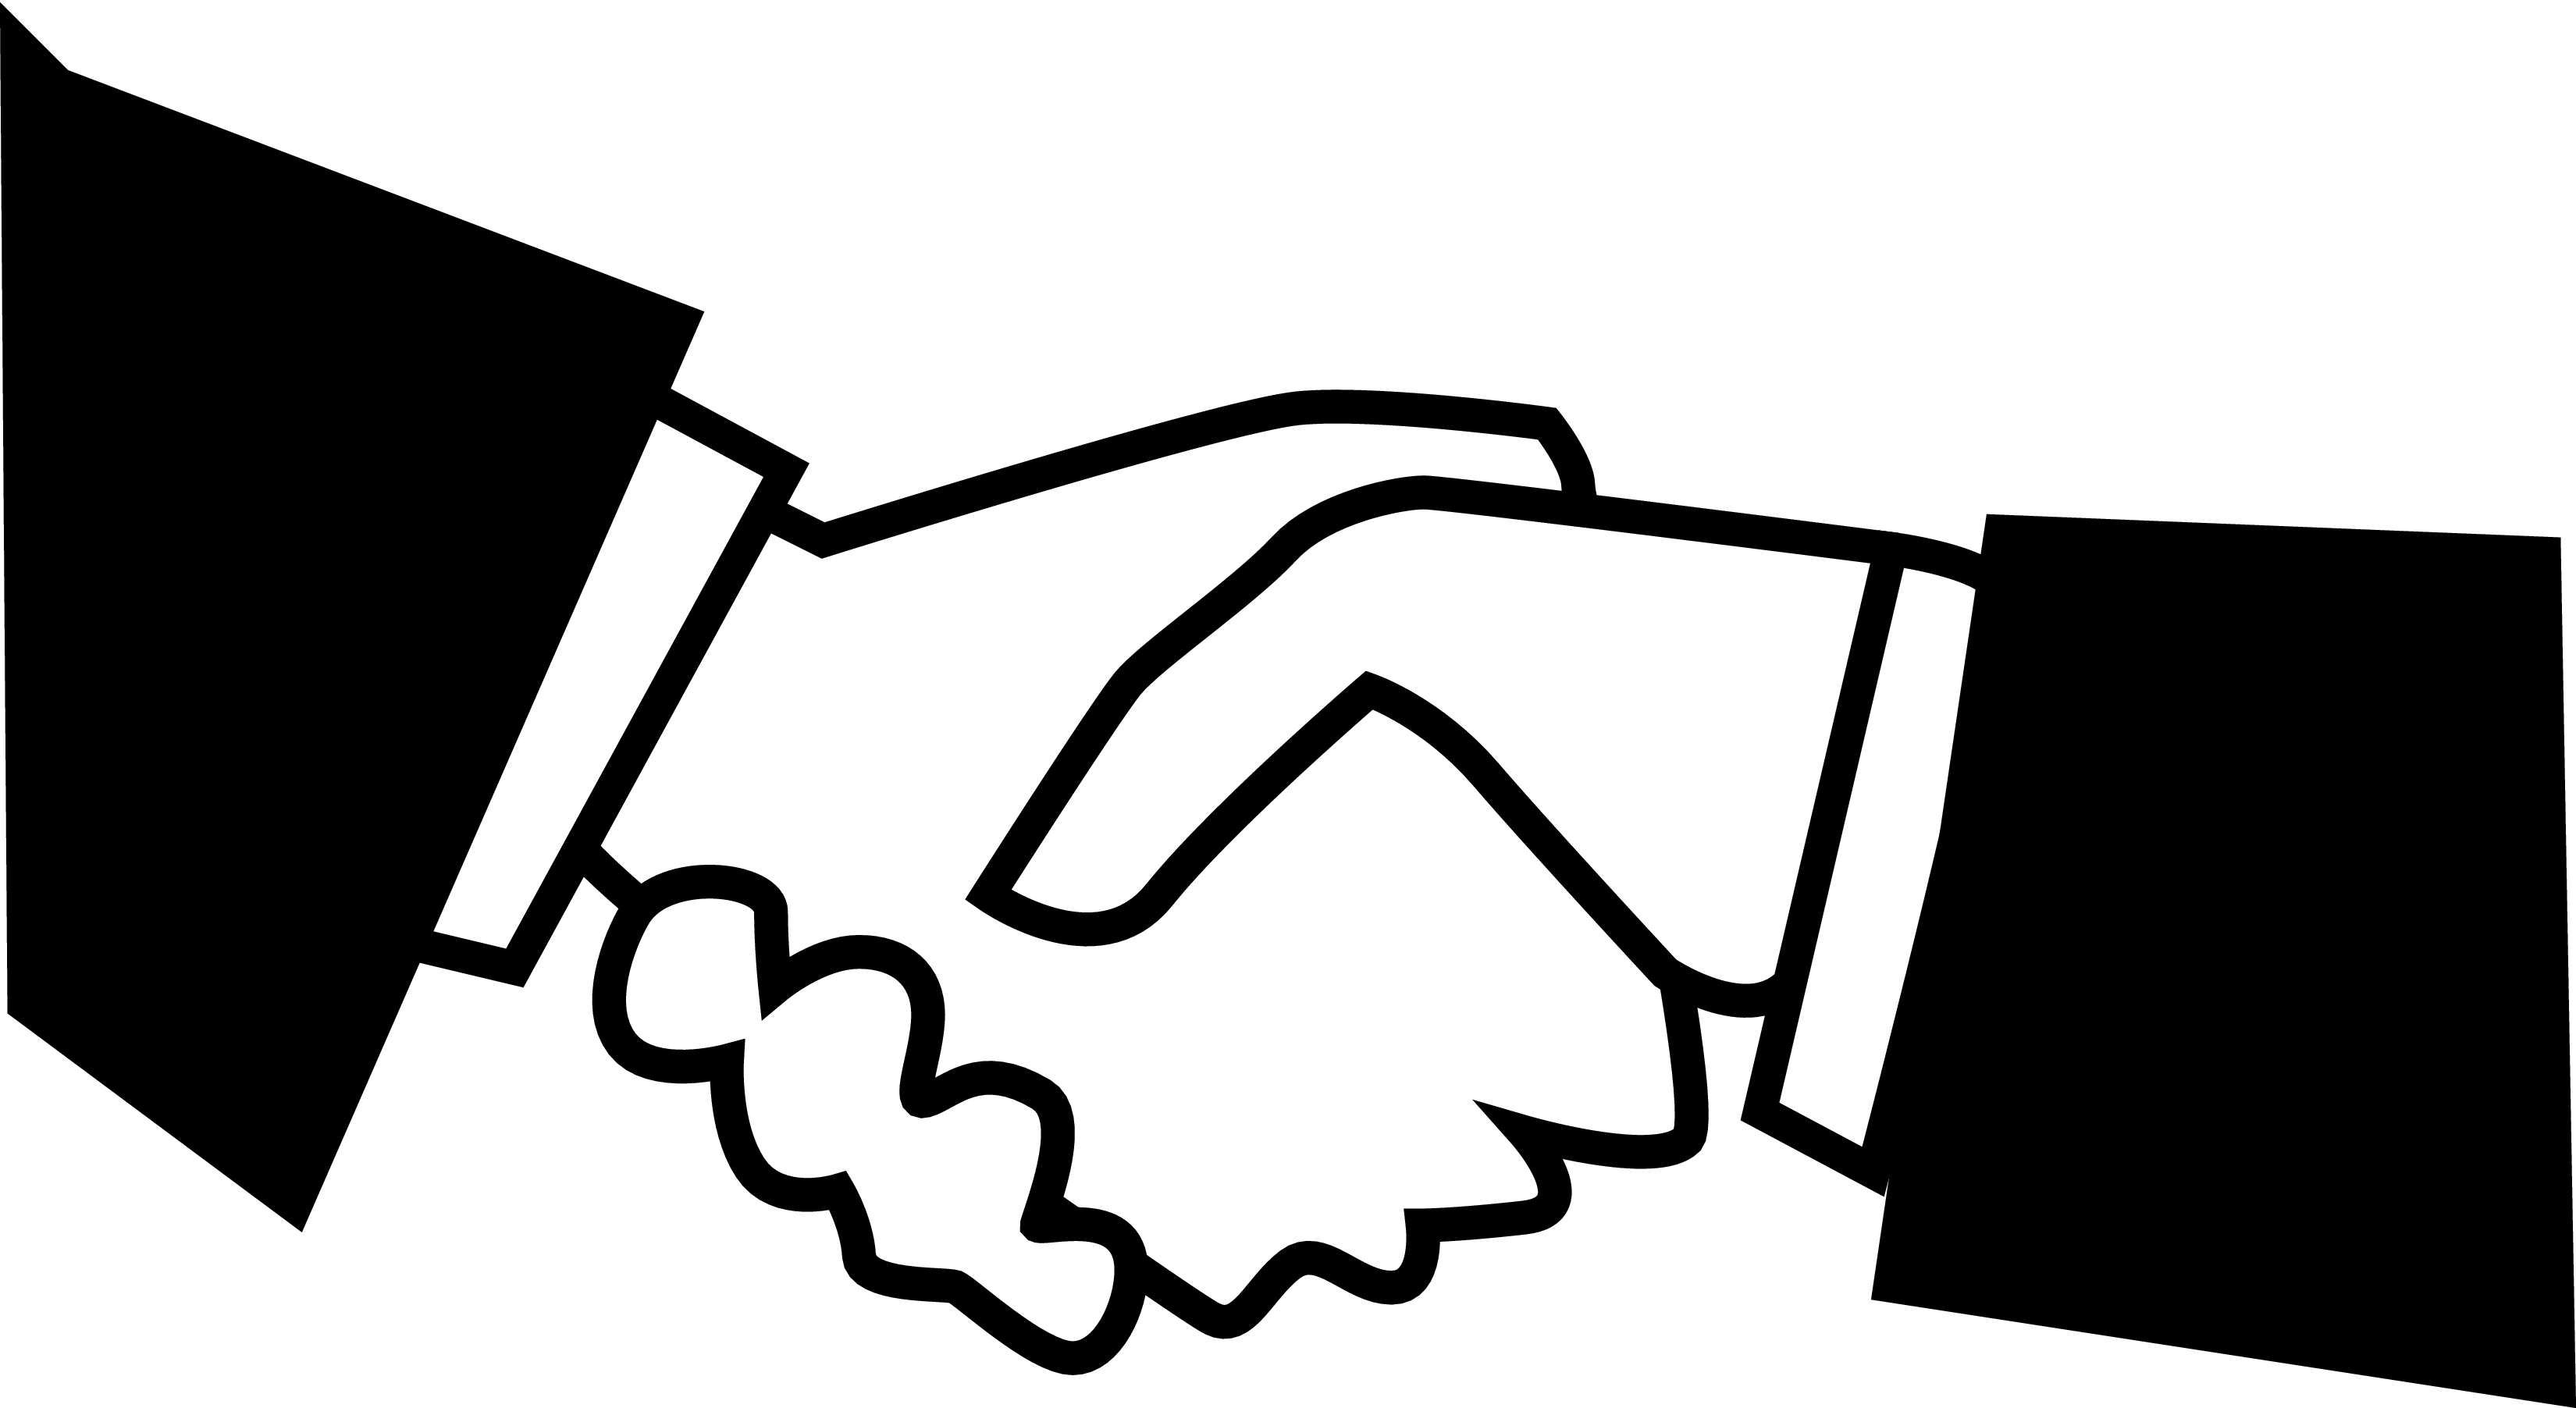 Hand Shake Clip Art - Clipart library